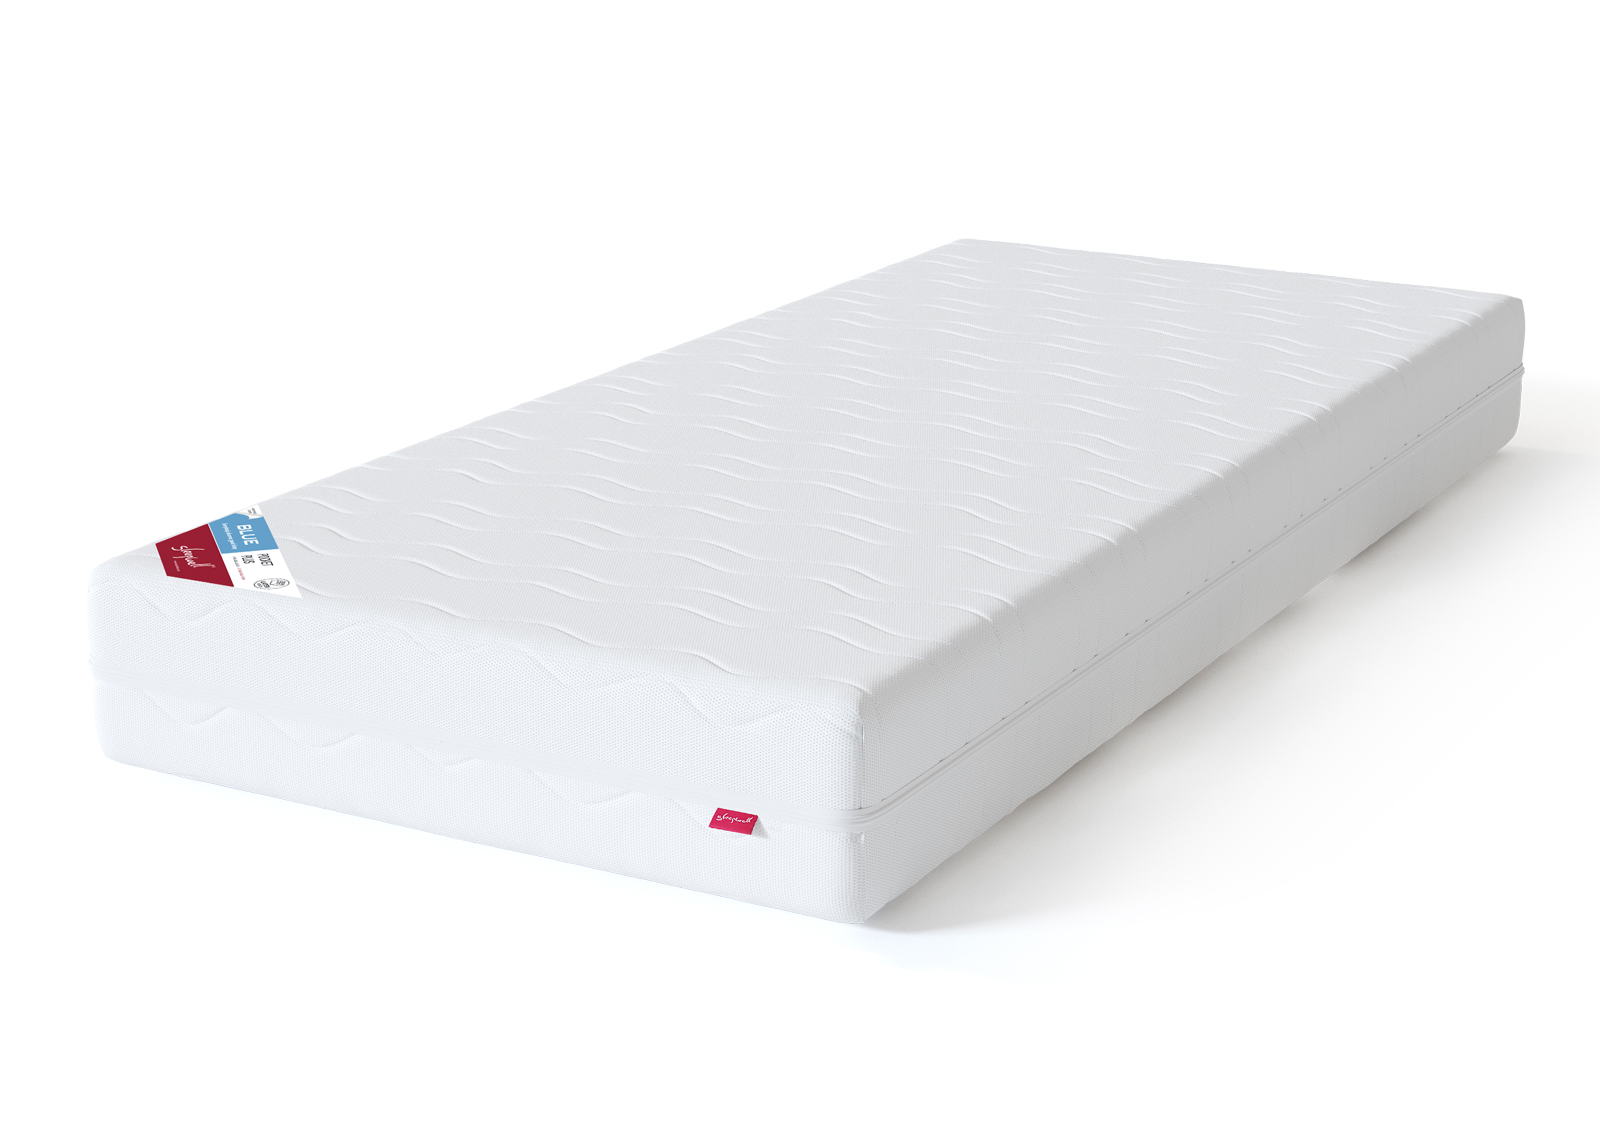 Sleepwell joustinpatja BLUE Pocket Plus 90x200 cm